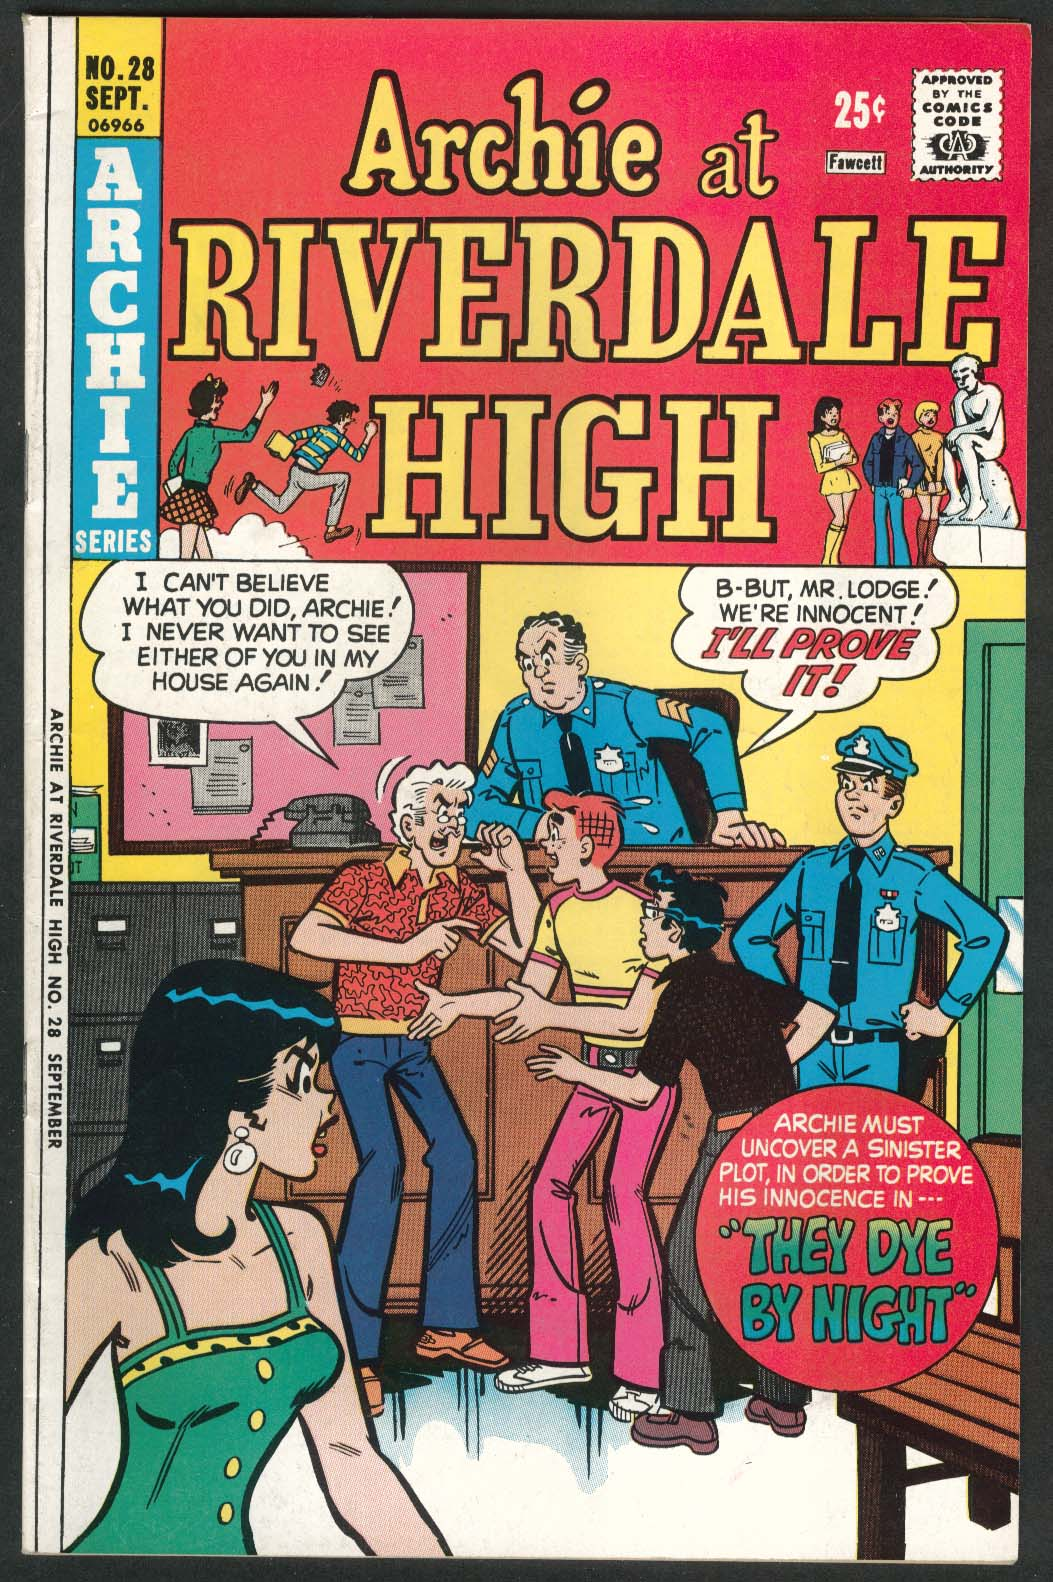 ARCHIE at RIVERDALE HIGH #28 Archie series comic book 9 1975